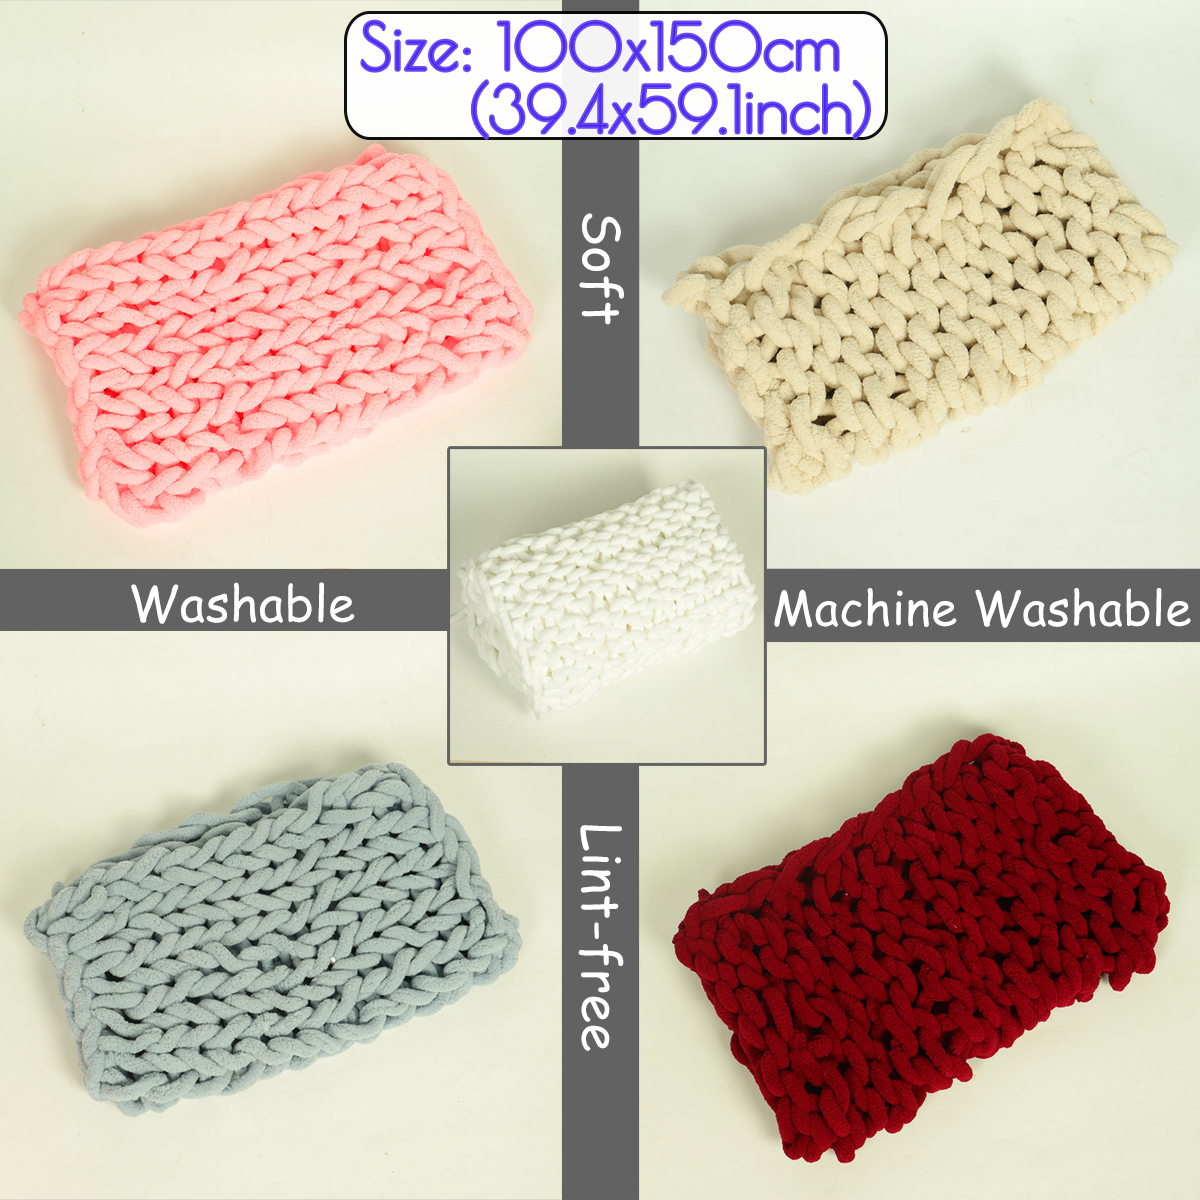 100x150cm Handmade Knitted Blanket Cotton Soft Washable Lint-free Throw Blankets